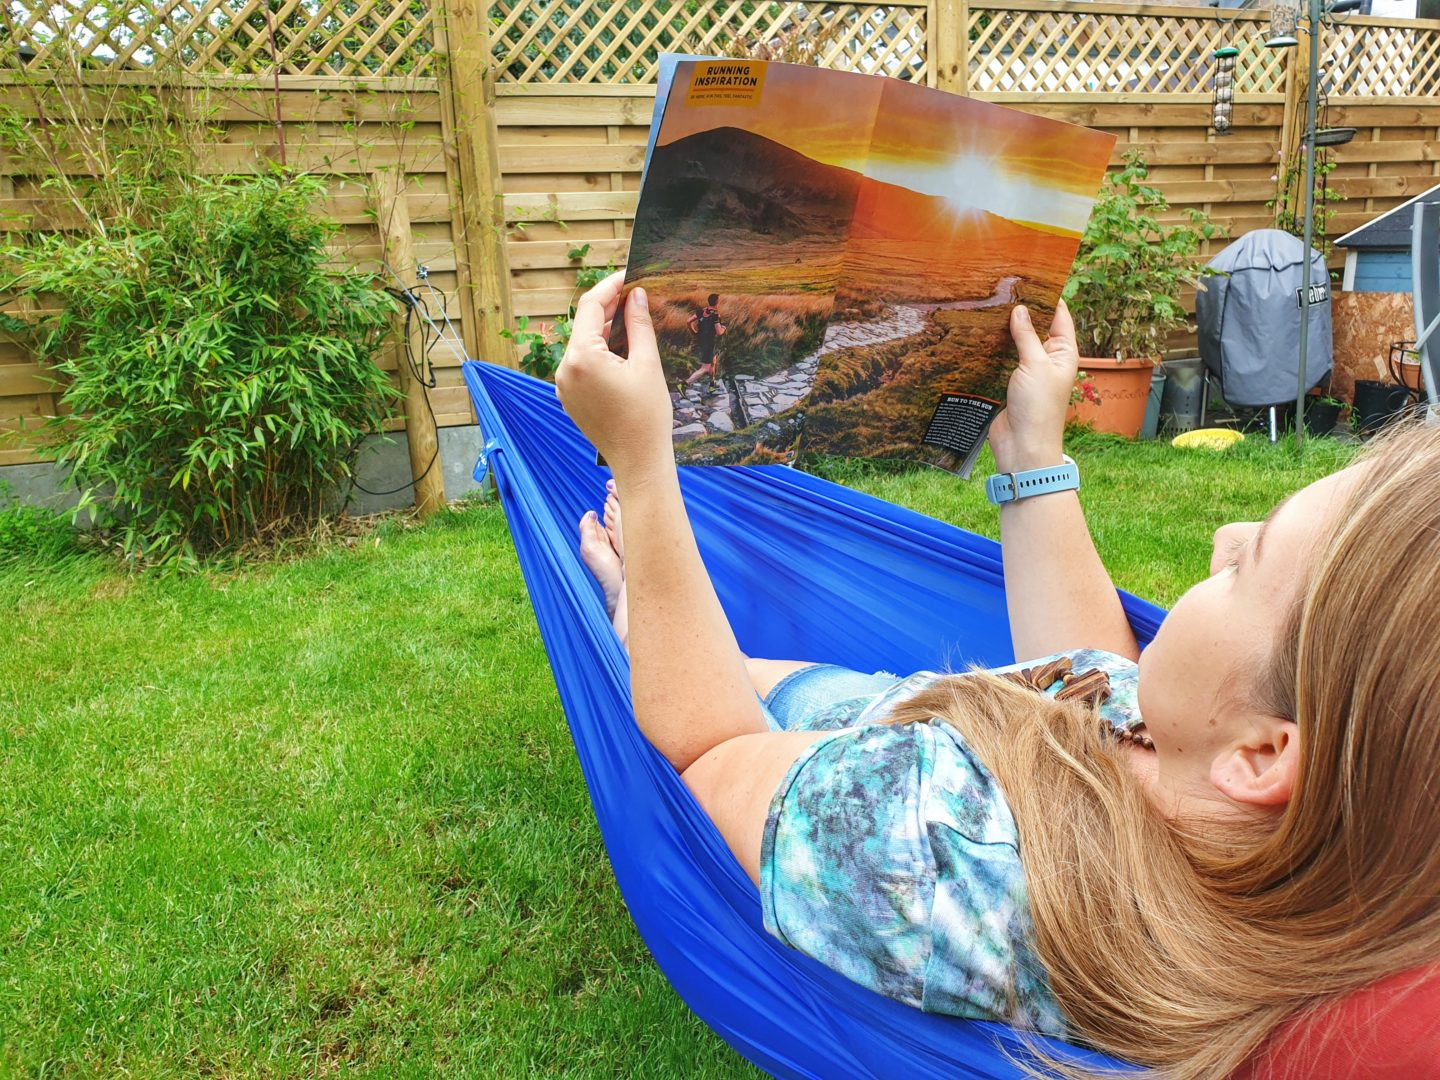 Reading a magazine in a hammock